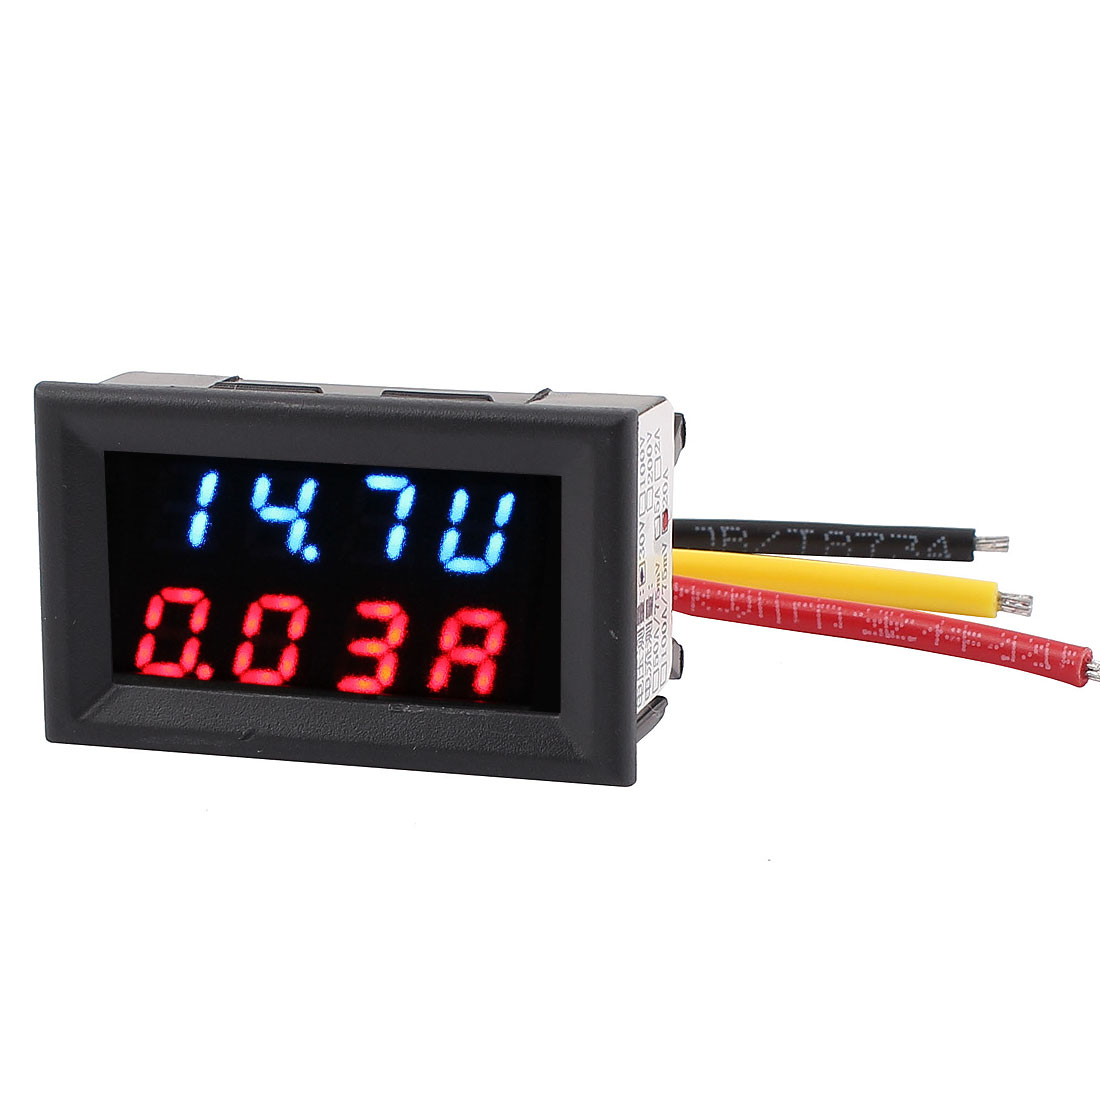 DC 4-30V 0-20A Dual LED Digital Mobile Battery Tester Voltage Current Meter